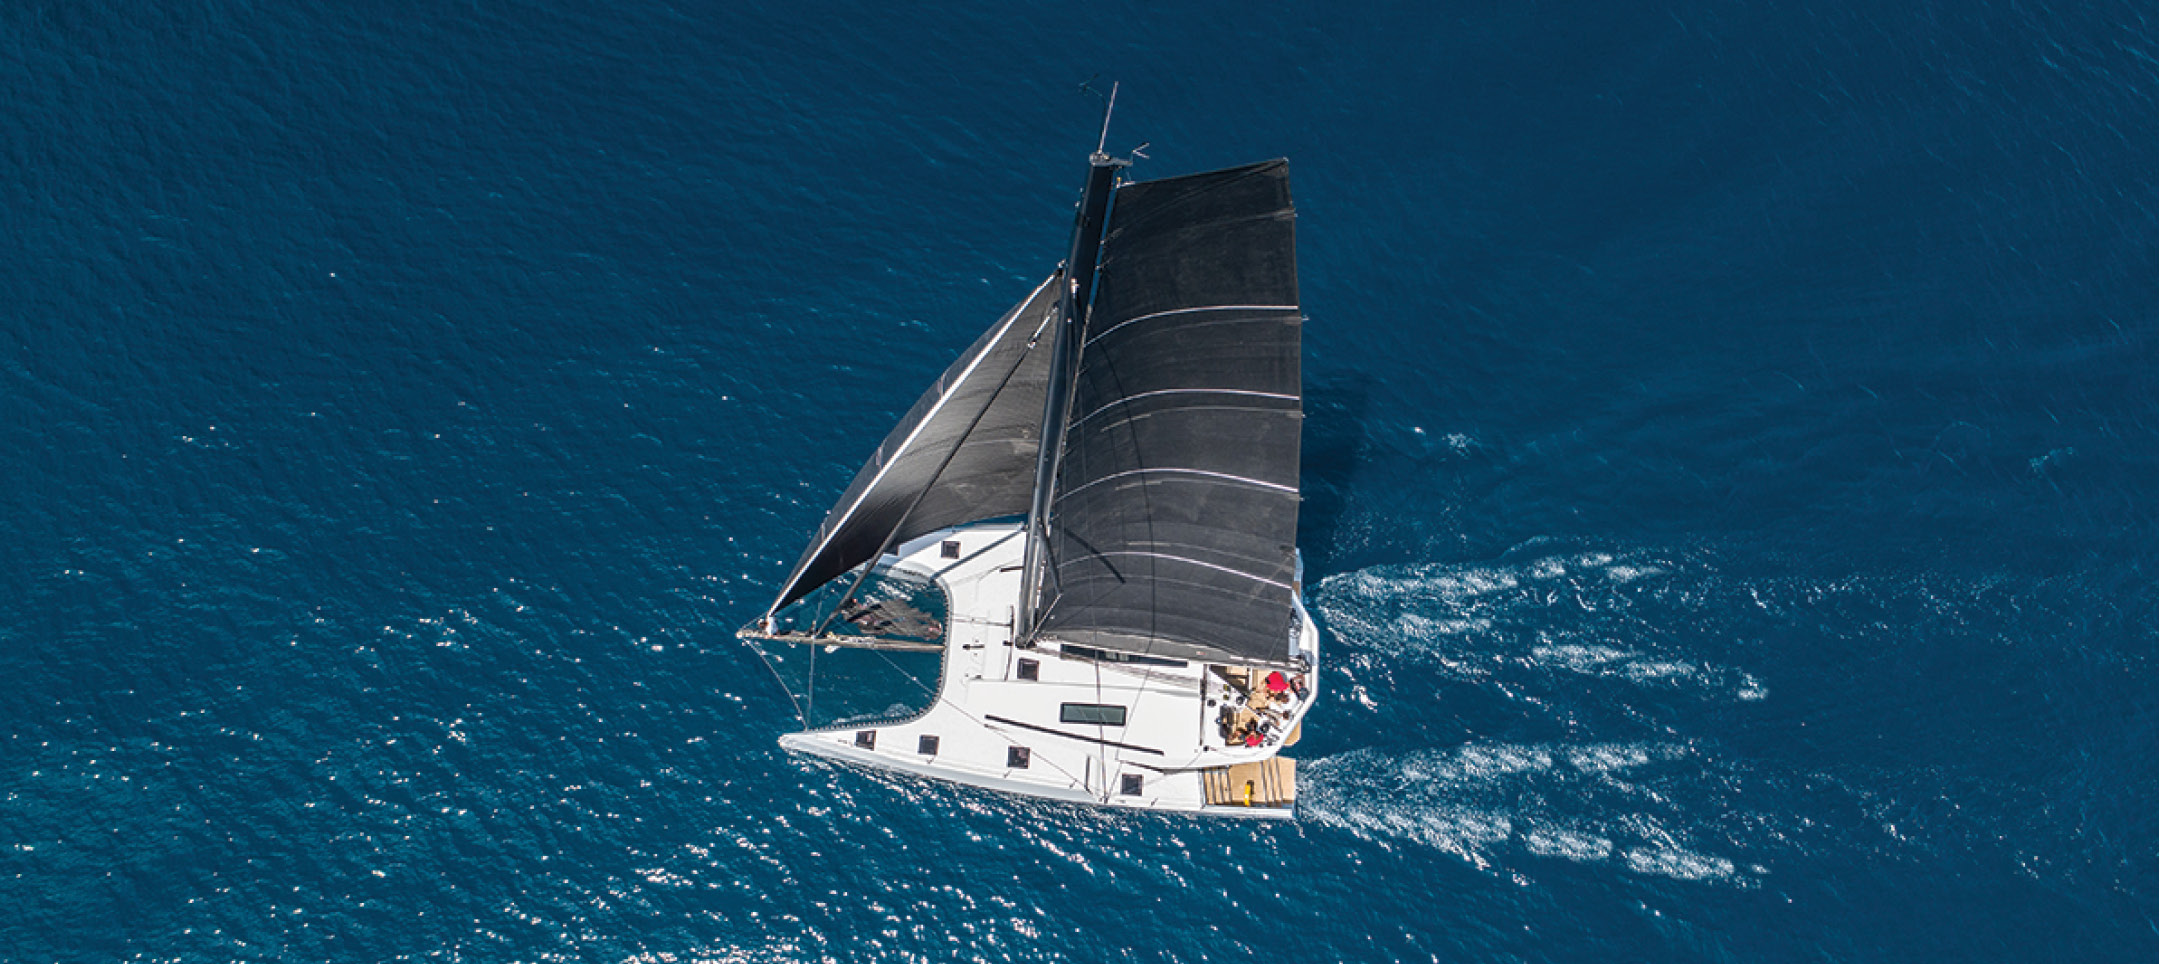 First Sail Test Review: McConaghy MC50 The first of a new line of luxury performance cats that can sail as fast as the wind